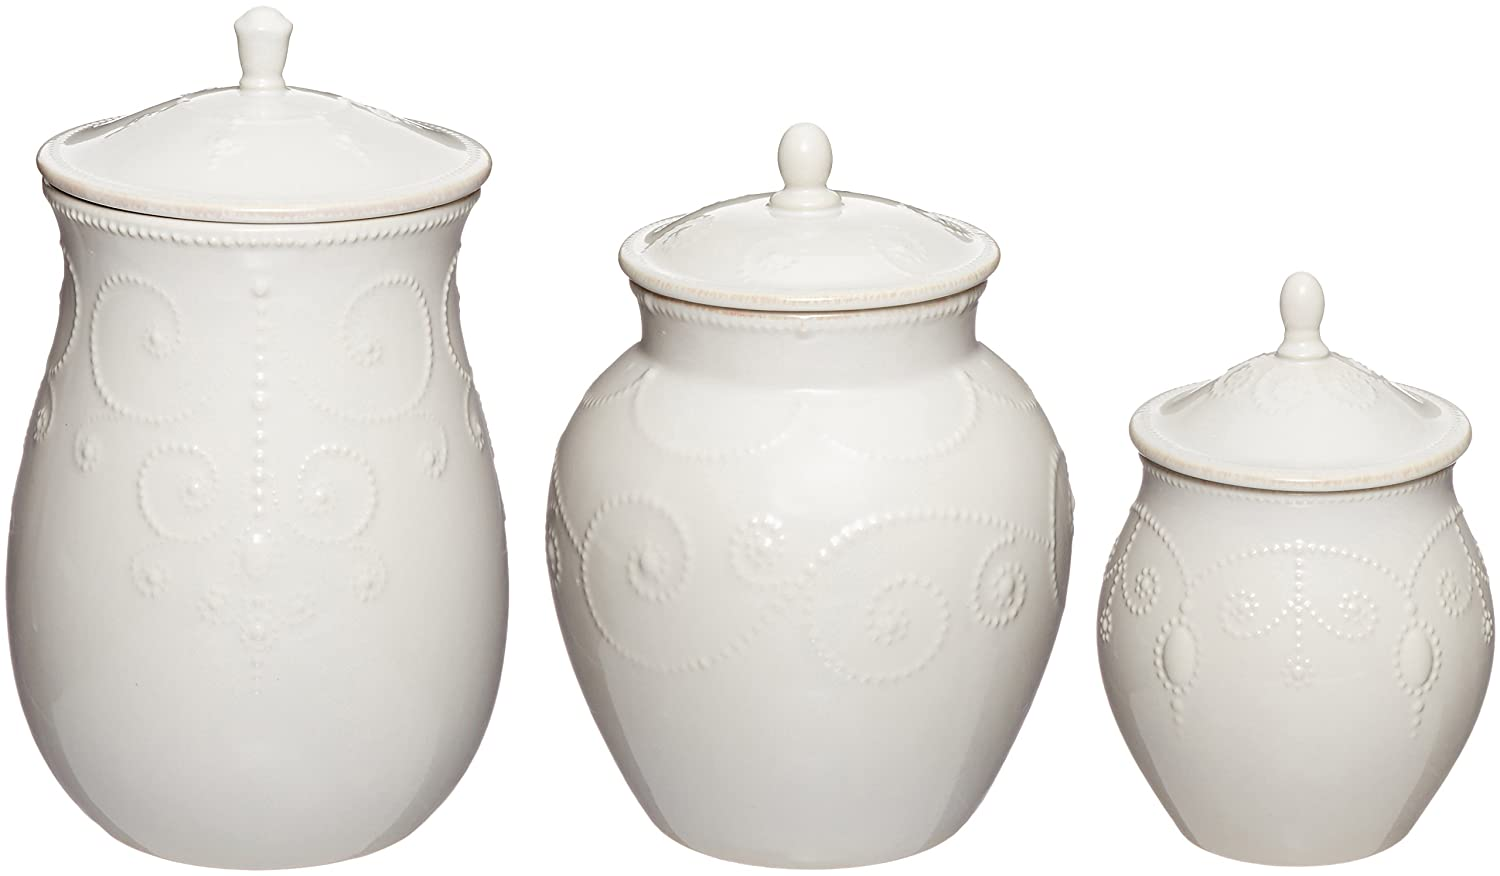 amazon com lenox french perle canisters set of 3 white